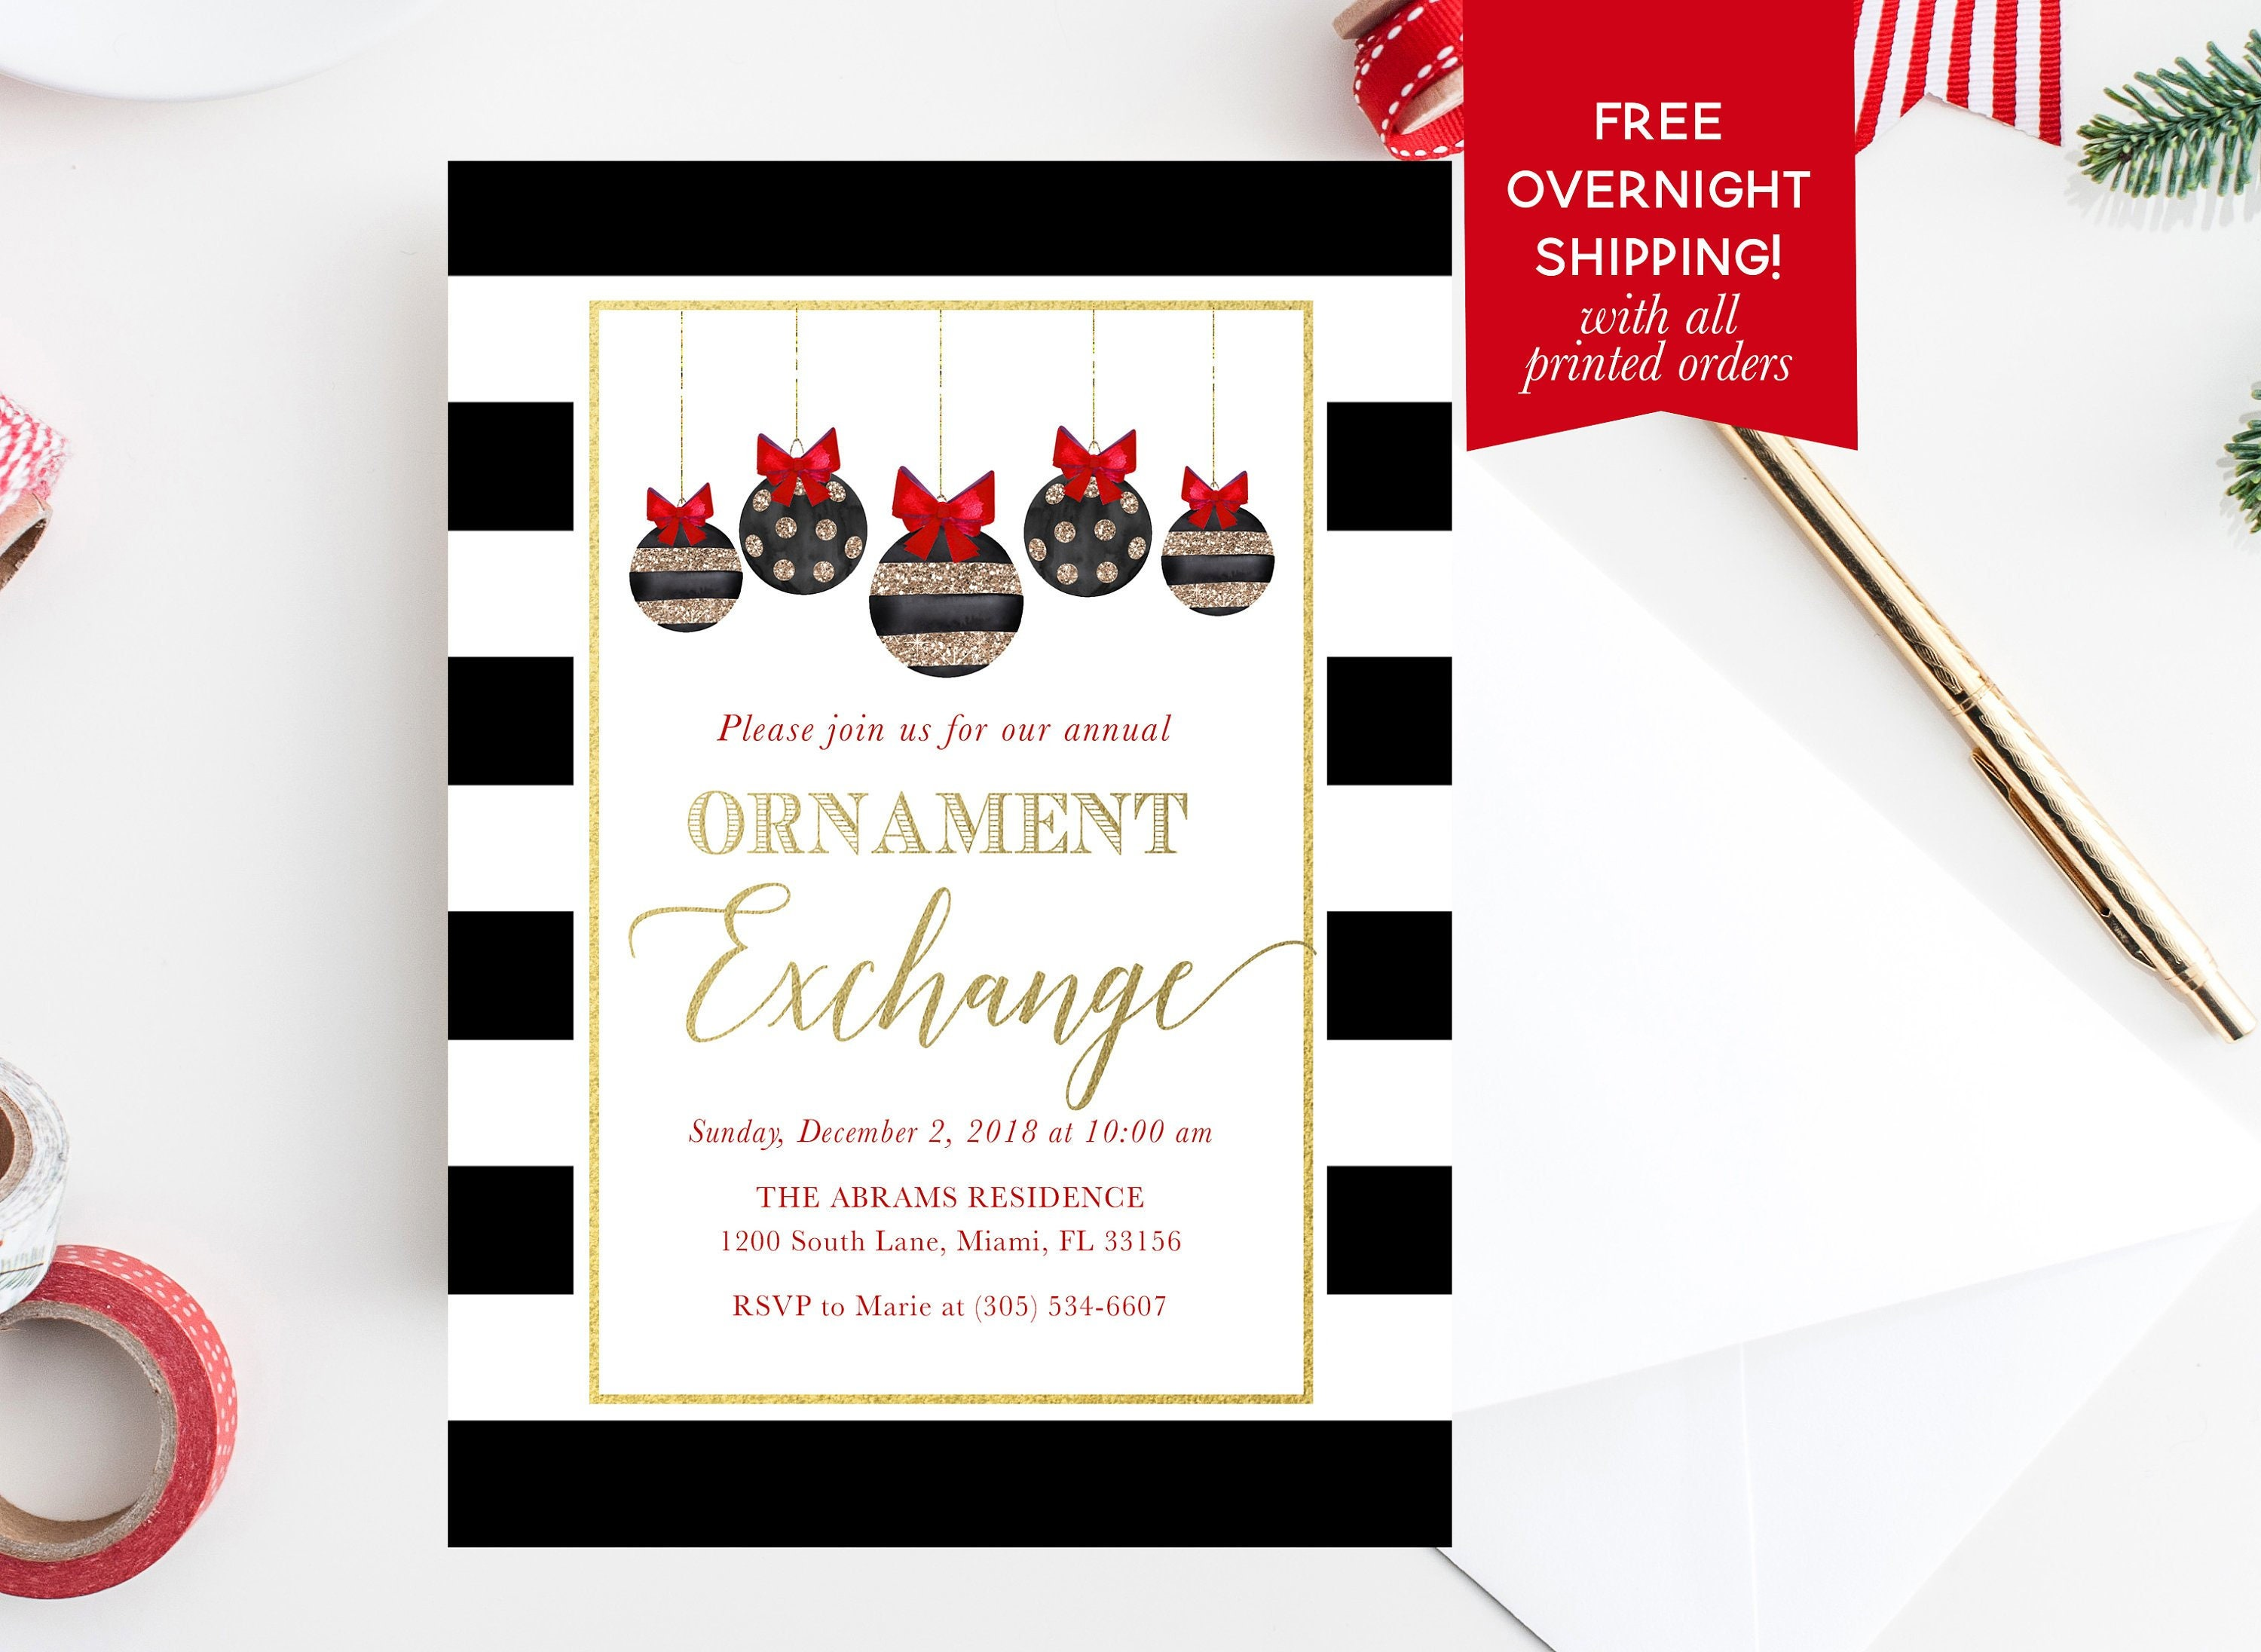 ornament exchange party invitation ornament exchange invitation